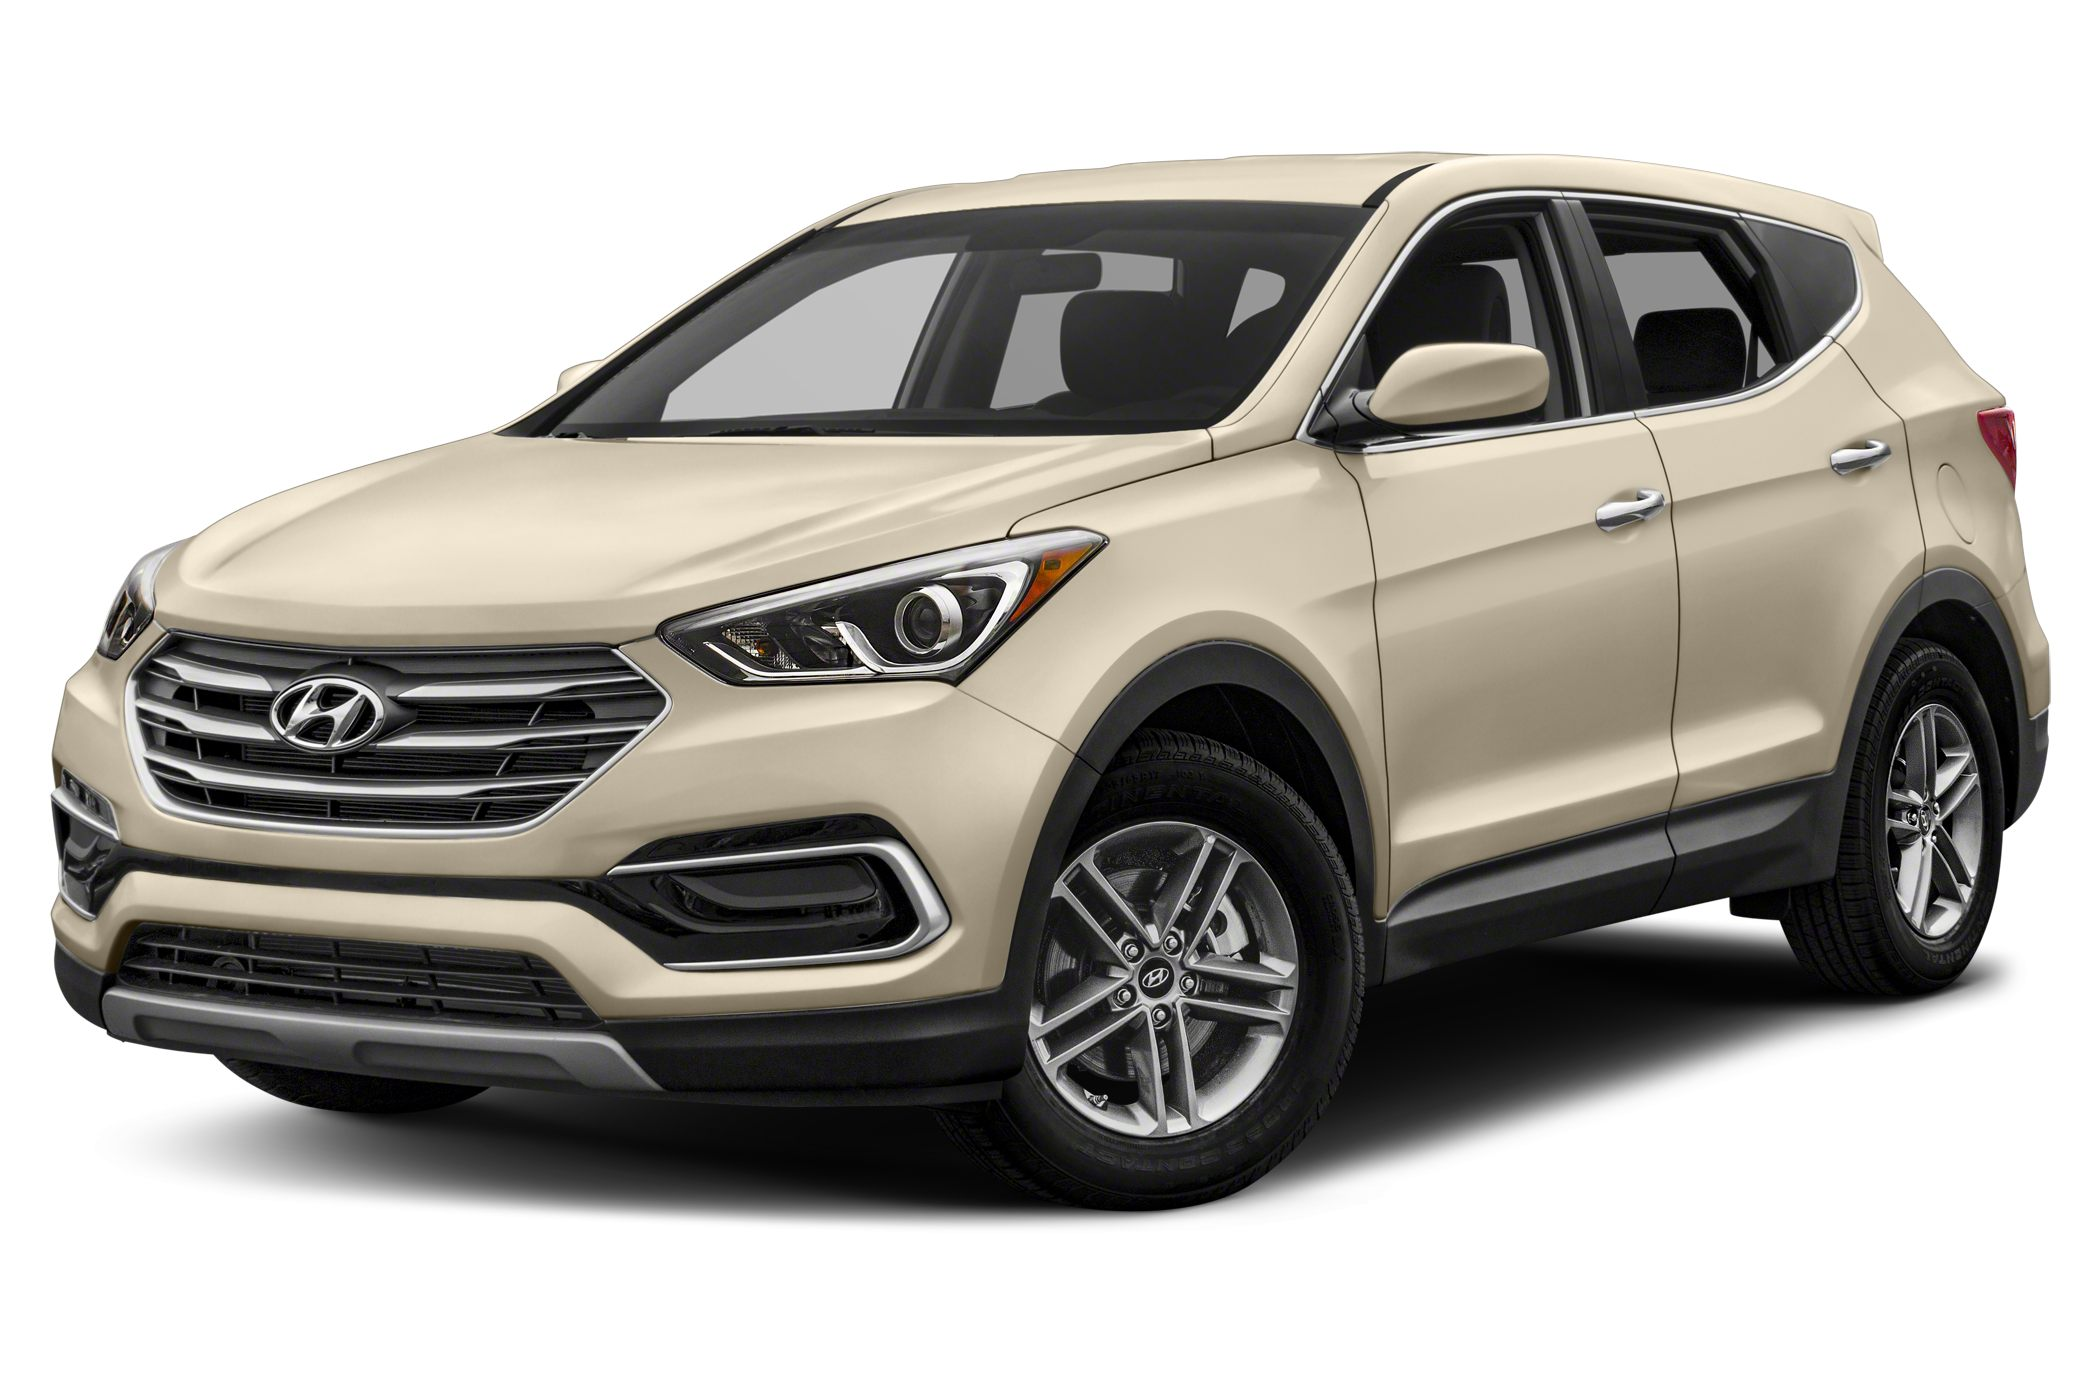 Hyundai Used Cars Luxury Cars for Sale at Holler Hyundai In Winter Park Fl